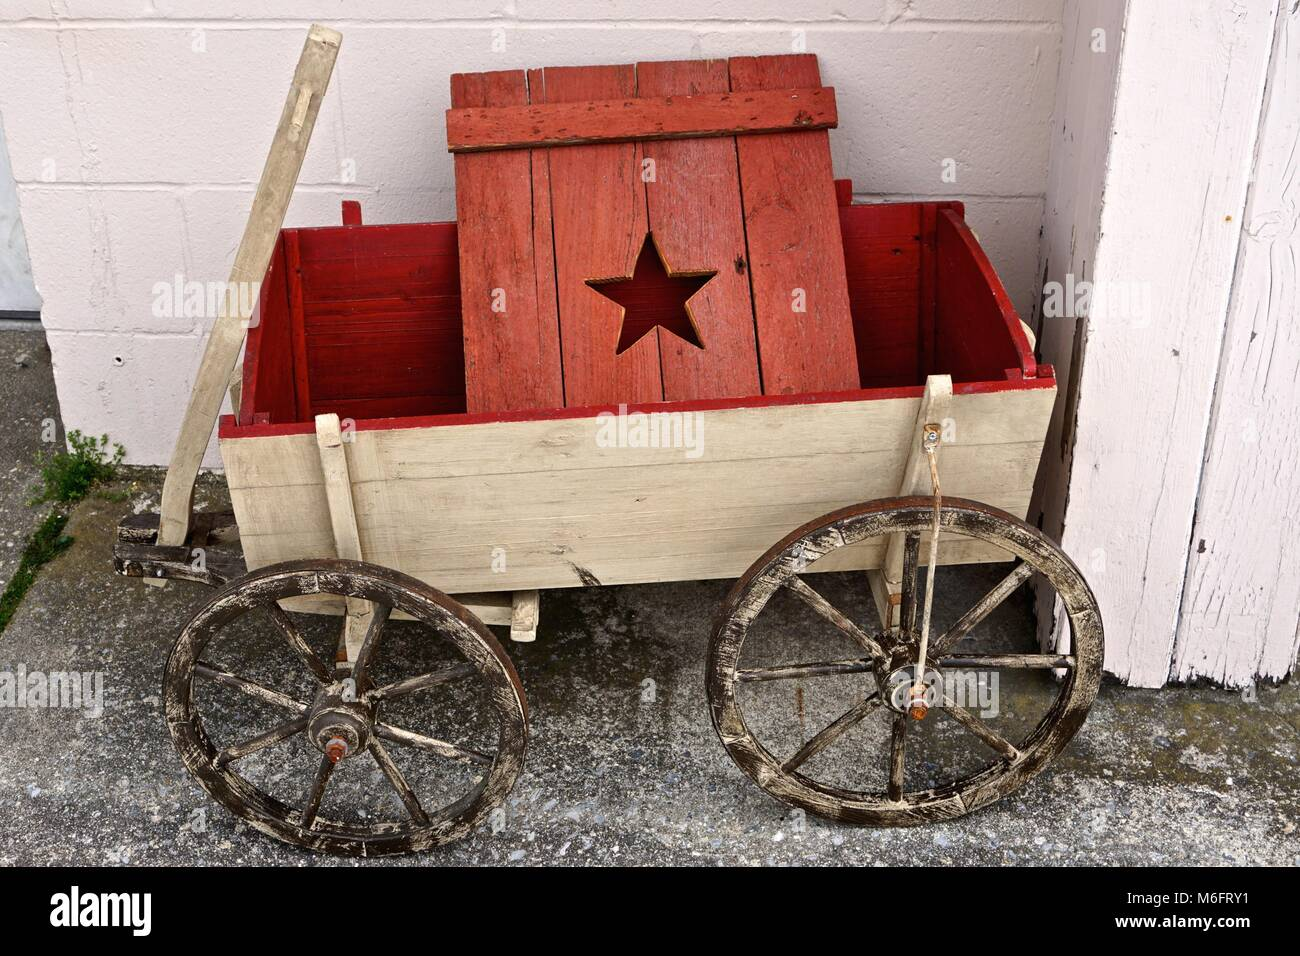 Vintage Wooden Toy Wagon And A Red Wood Door With A Star Cut Into It Stock Photo Alamy